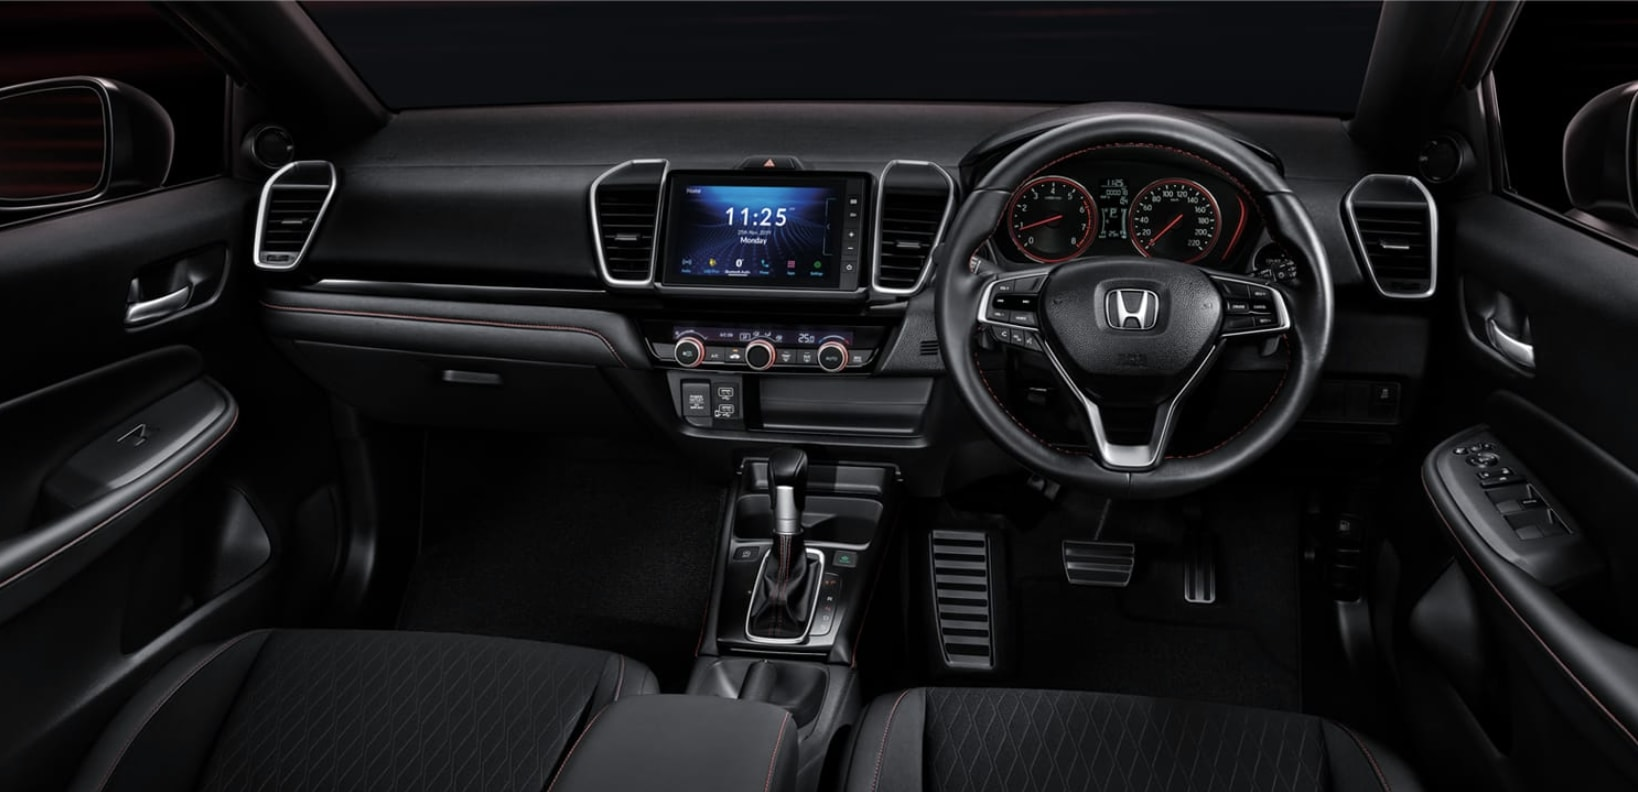 On the inside, Honda have once again chosen to keep the profile minimal as well as aesthetic. Photo courtesy: https://www.honda.co.th/city